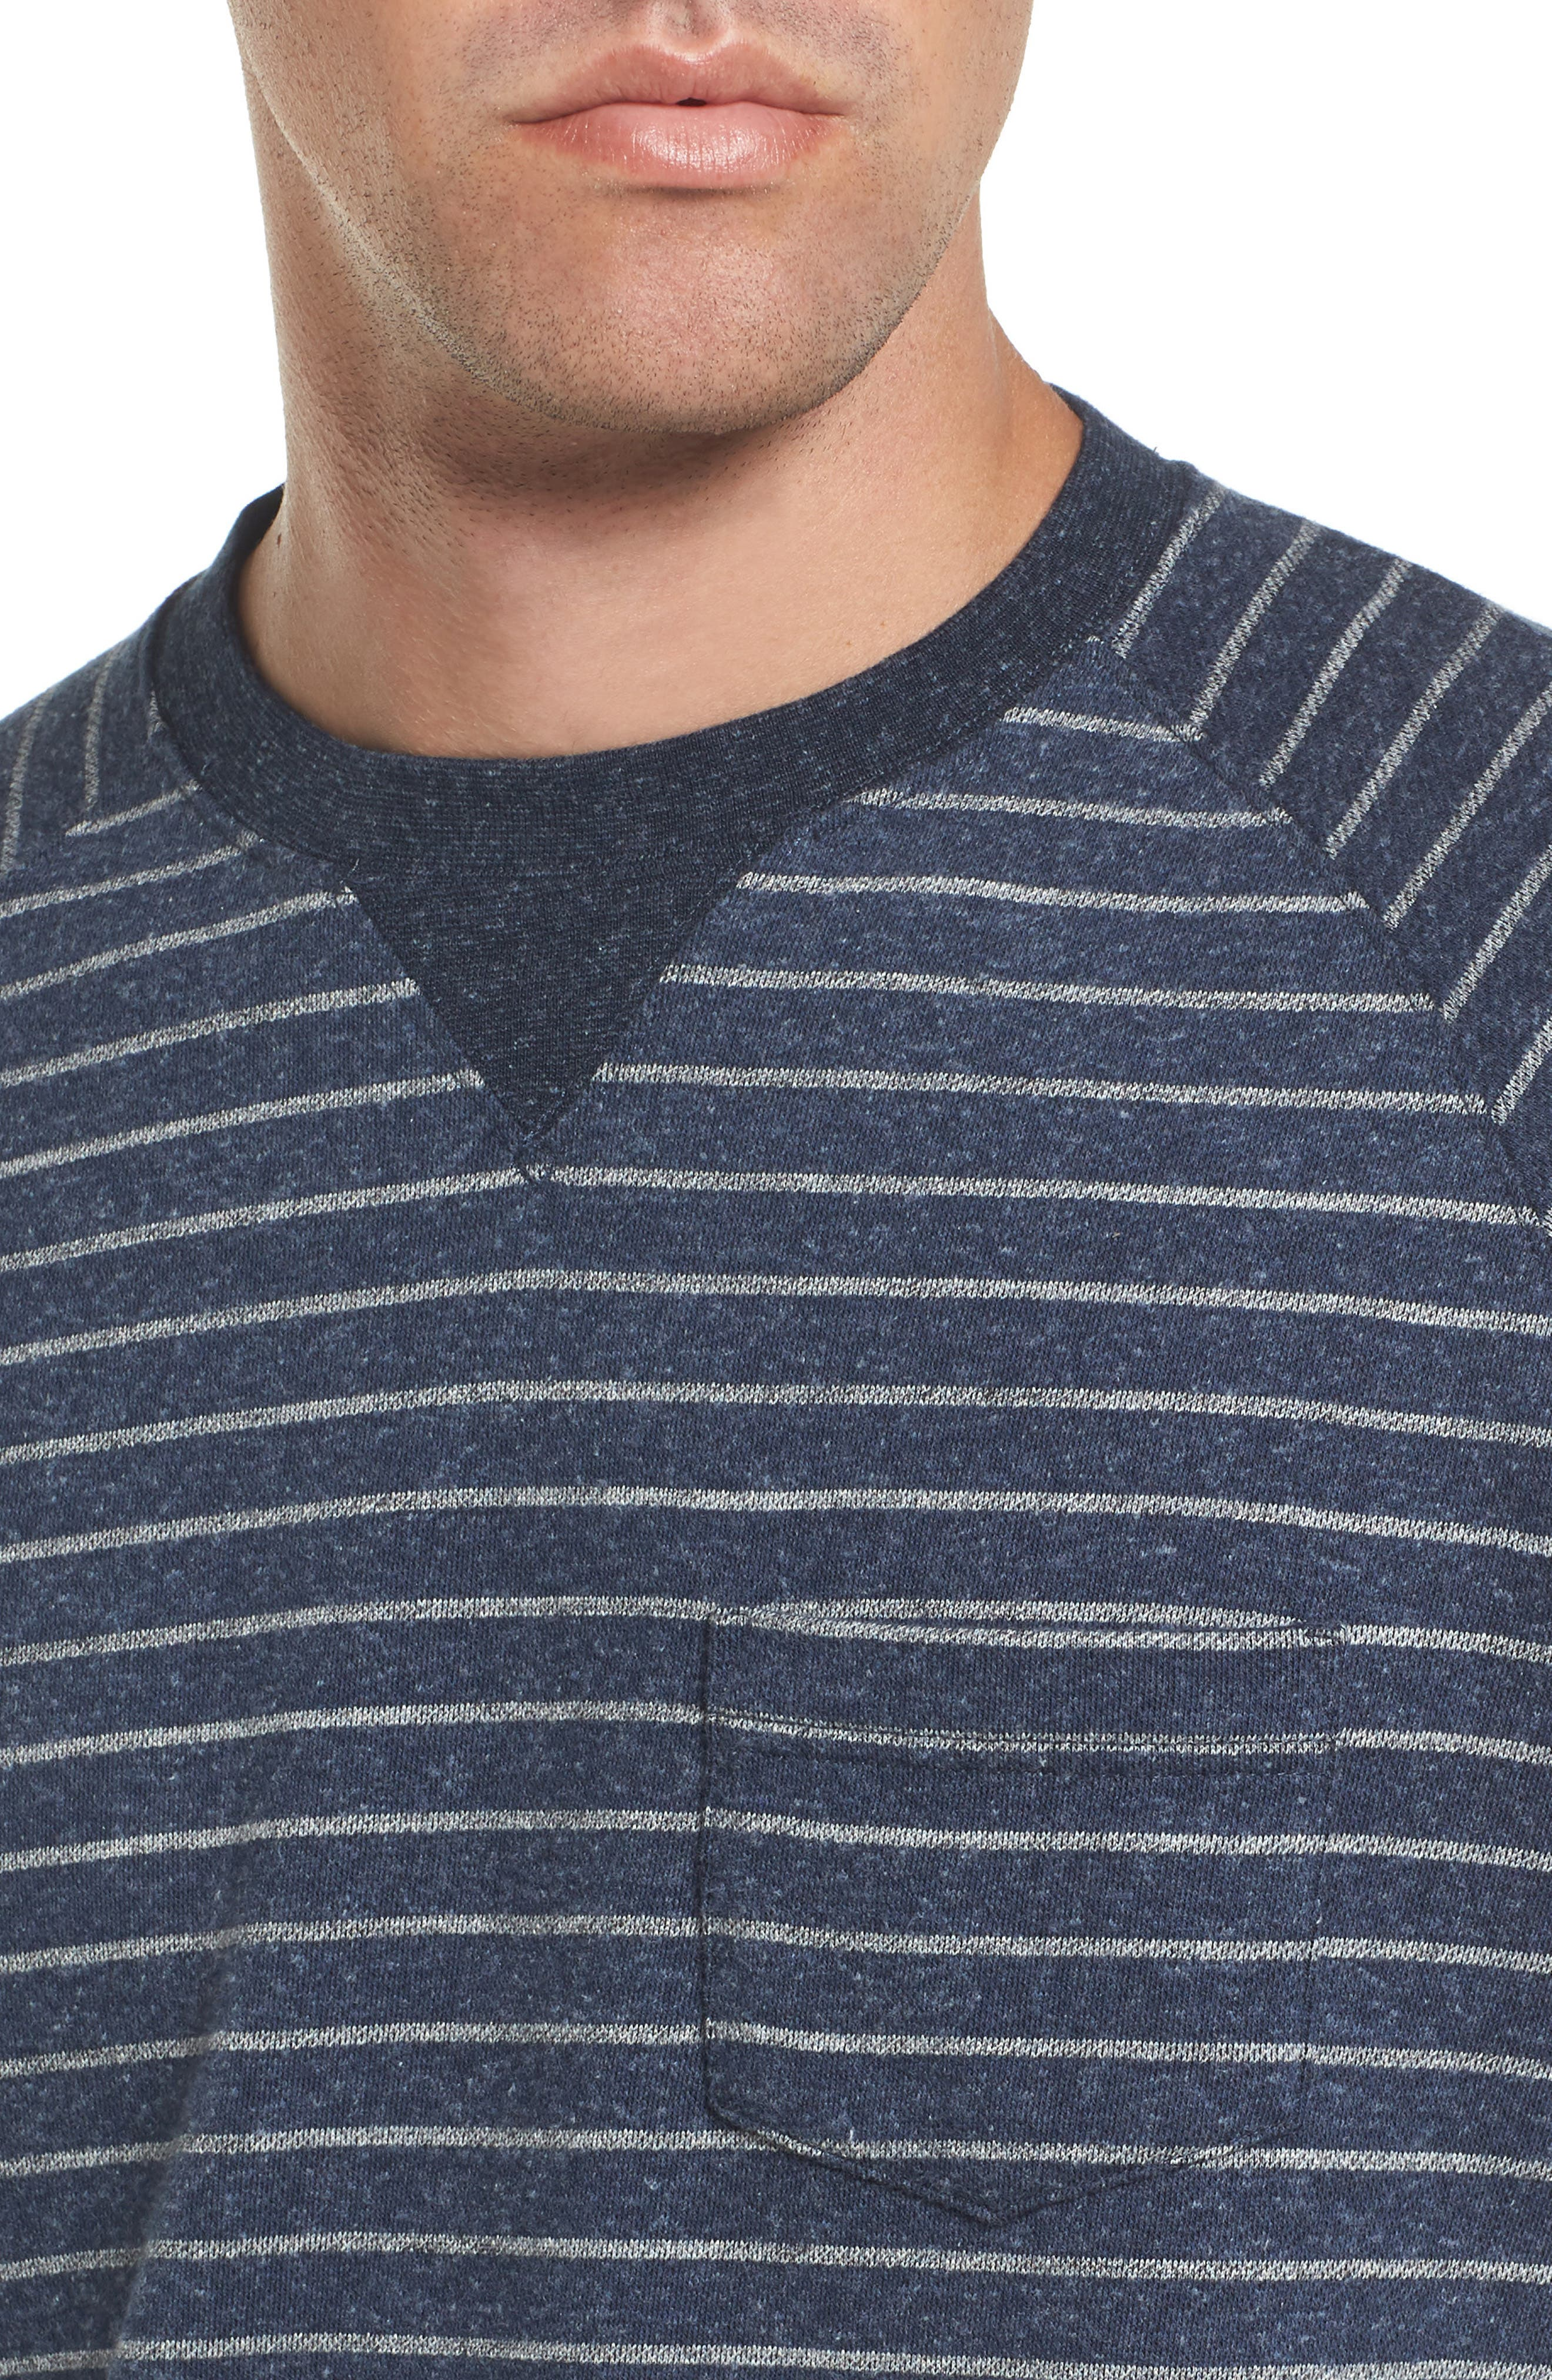 Palmer Modern Fit Athletic Stripe Sweatshirt,                             Alternate thumbnail 5, color,                             Navy/ Gray Heather